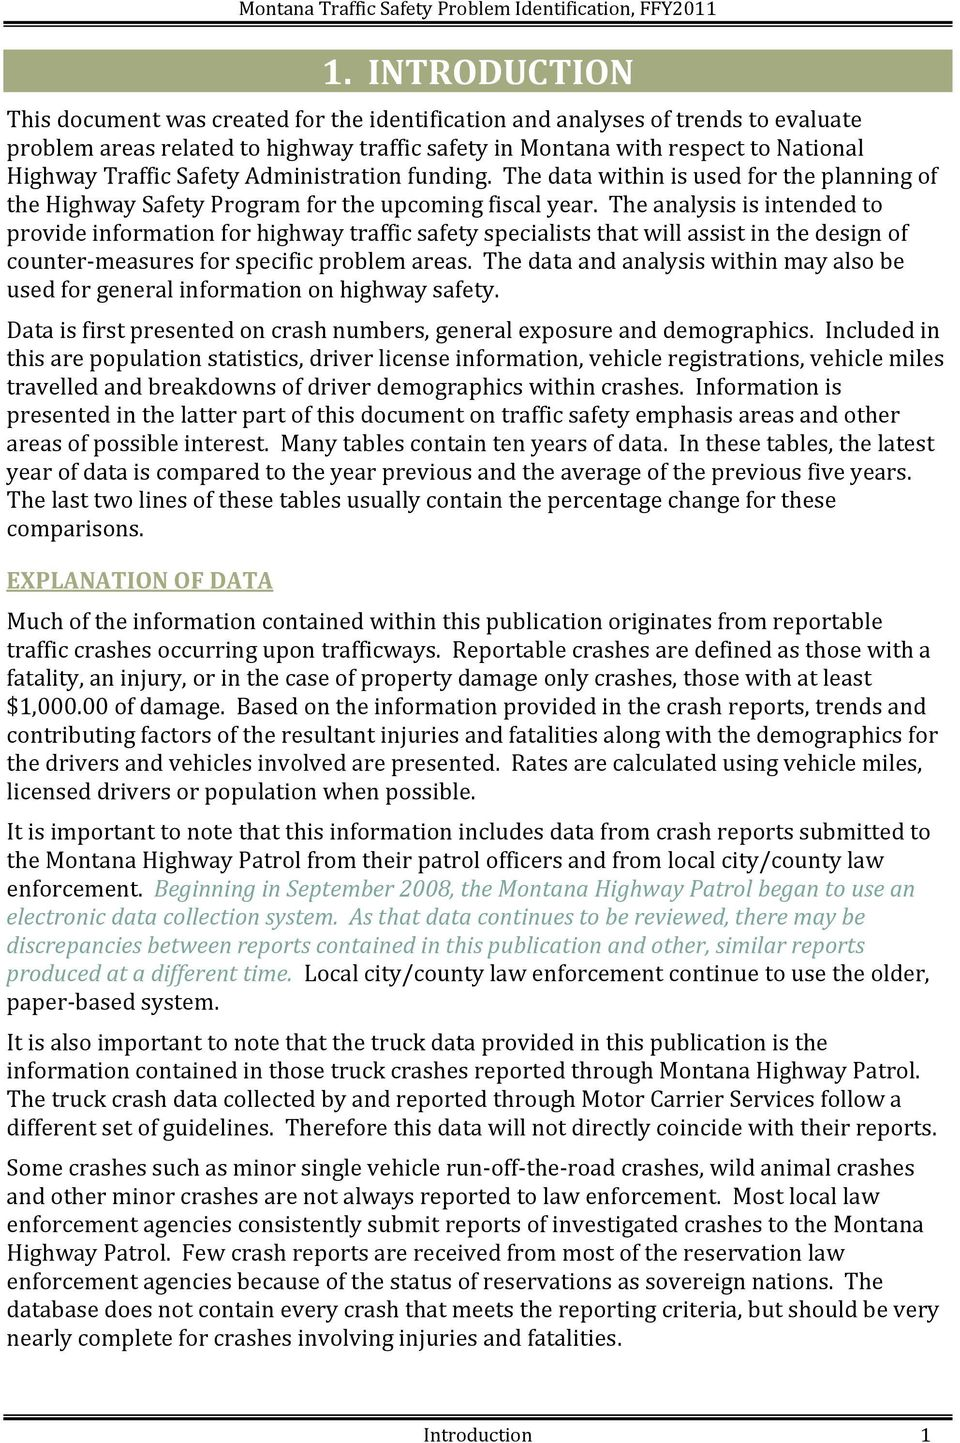 The analysis is intended to provide information for highway traffic safety specialists that will assist in the design of counter-measures for specific problem areas.